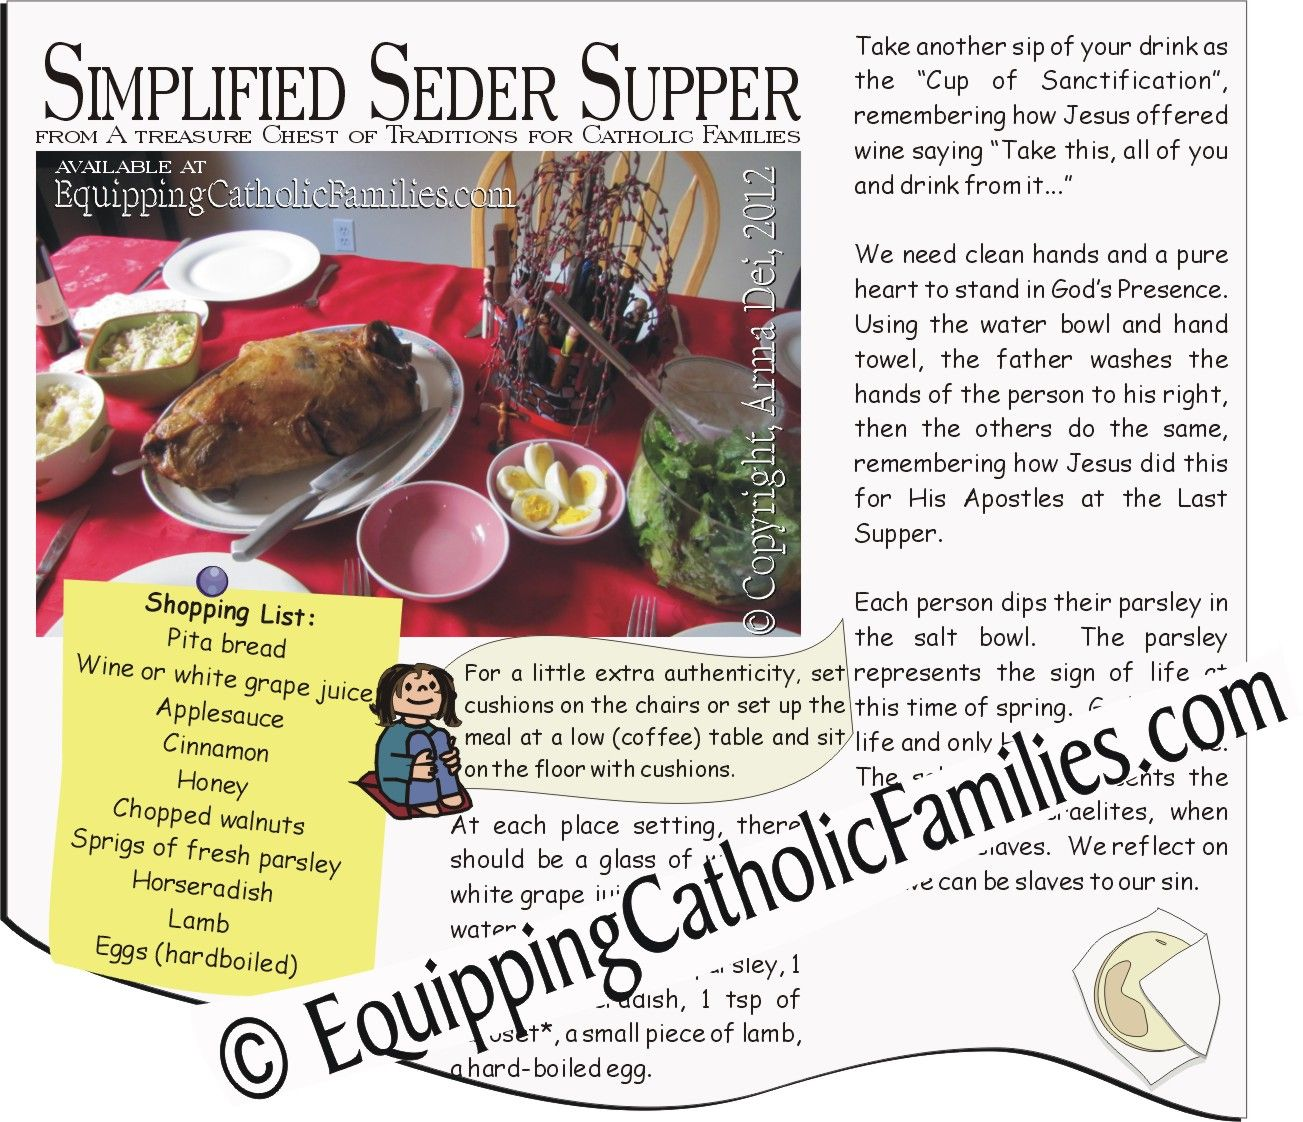 Simplified seder supper with free printable equipping catholic